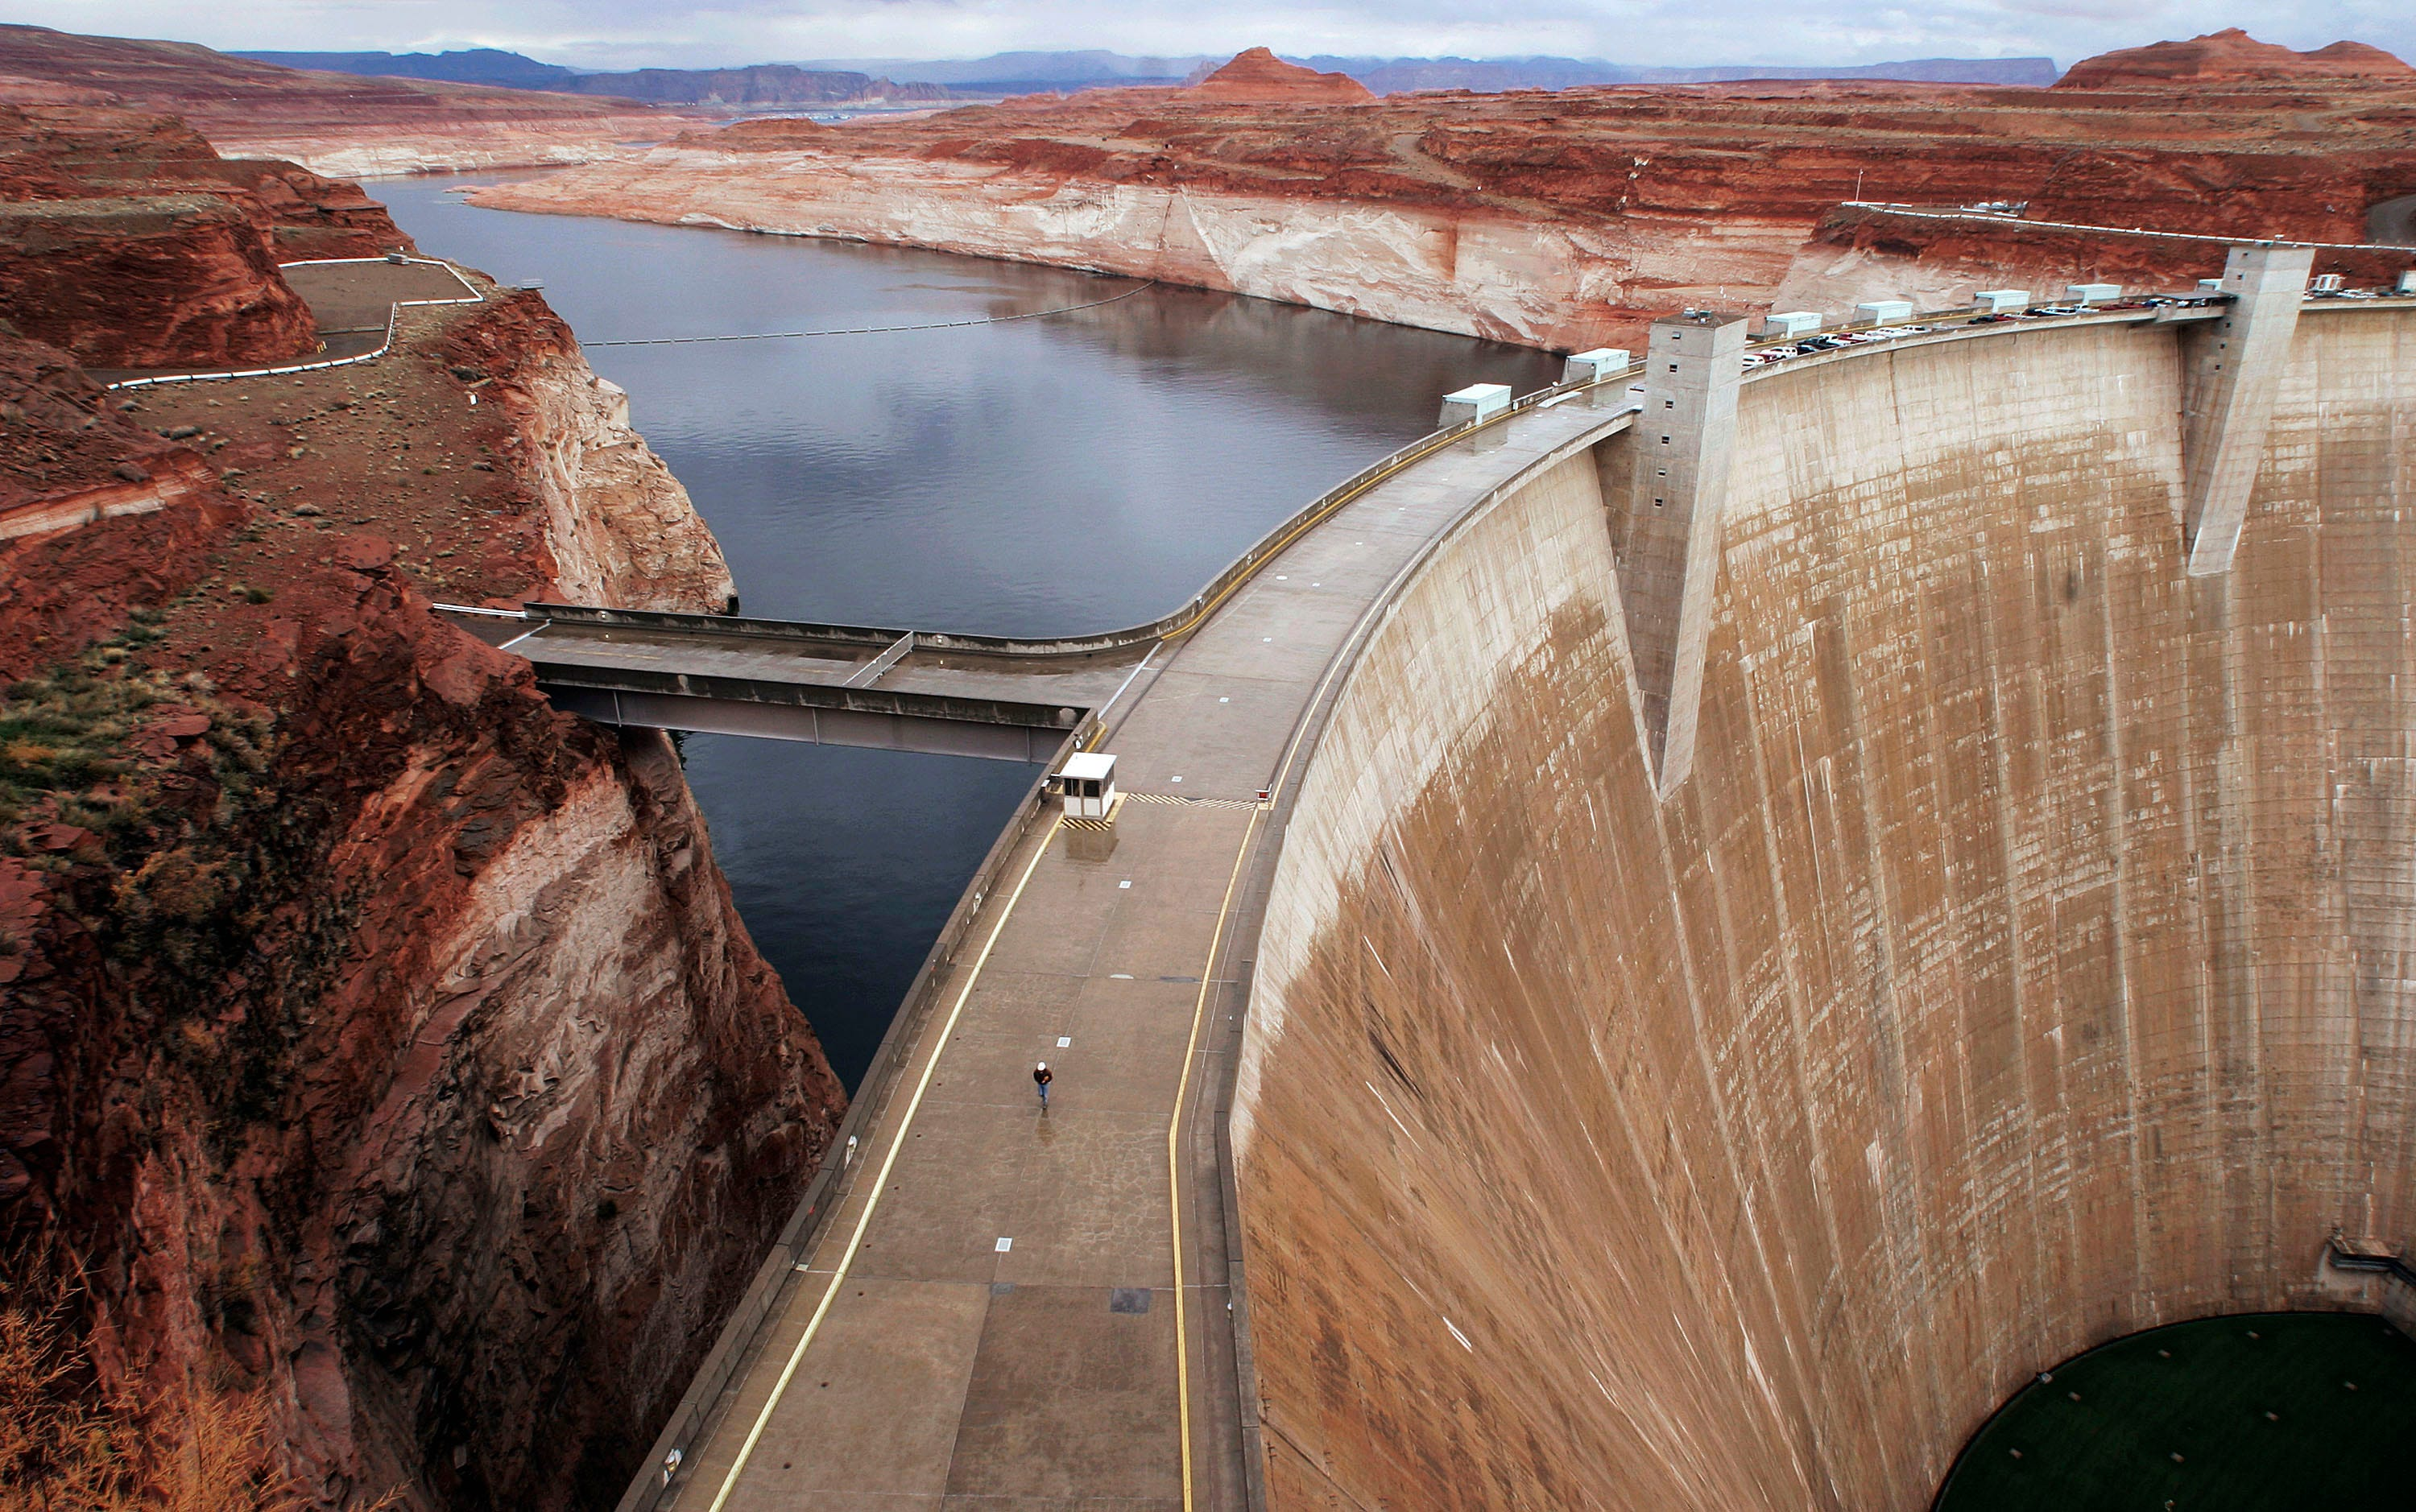 PAGE, AZ - NOVEMBER 22:  An employee walks across Glen Canyon Dam with Lake Powell in the background November 22, 2004 in Page, Arizona. Completed in 1963 the dam, at full pool, holds 26 million acre feet of water. A six year drought has reduced that amount to nine million acre feet today and lowering the level of the lake by 130 feet. The Bureau of Reclamation is releasing water from the dam in a five day simulated flood ending November 25. The flood will move sediment down the Colorado River building up beaches and improving natural habitat through the Grand Canyon.  (Photo by Jeff Topping/Getty Images)